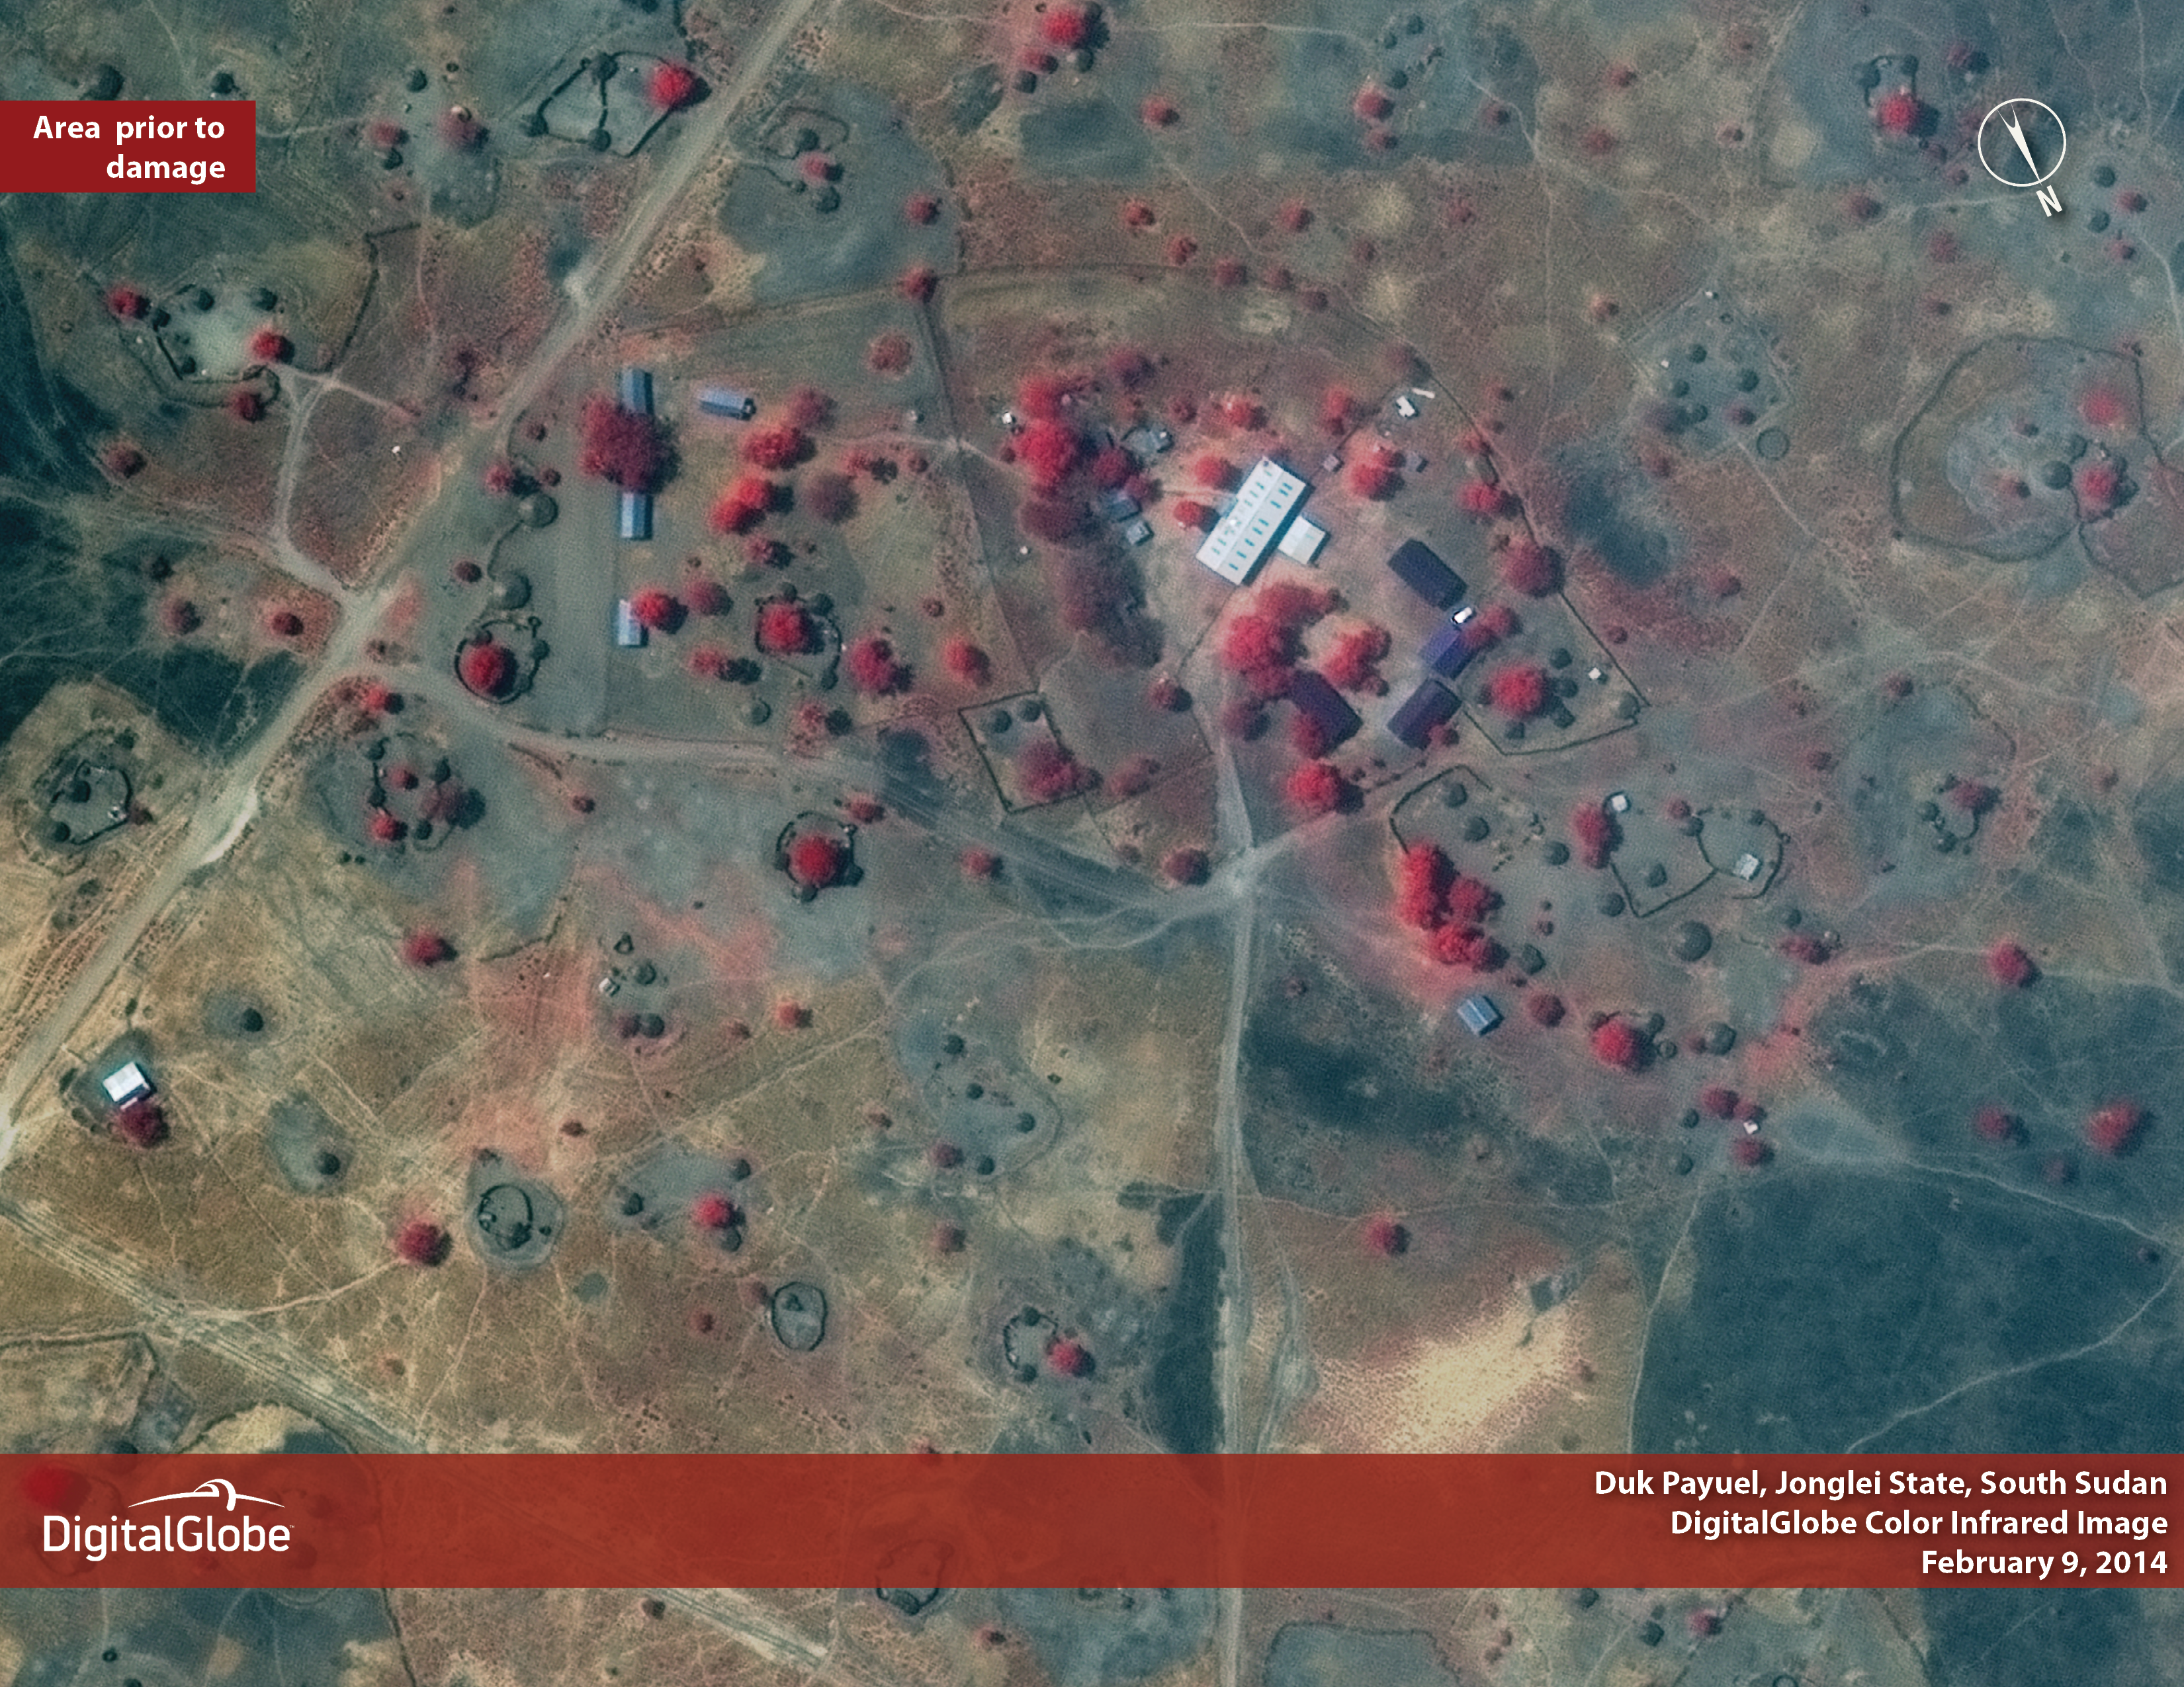 Image 2: Though the total number of damaged or destroyed homes in Duk is unknown, at least 10 huts were burned in the area reviewed by DigitalGlobe analysts, who also identified buildings that had been looted between February 9, 2014 and March 5, 2014.